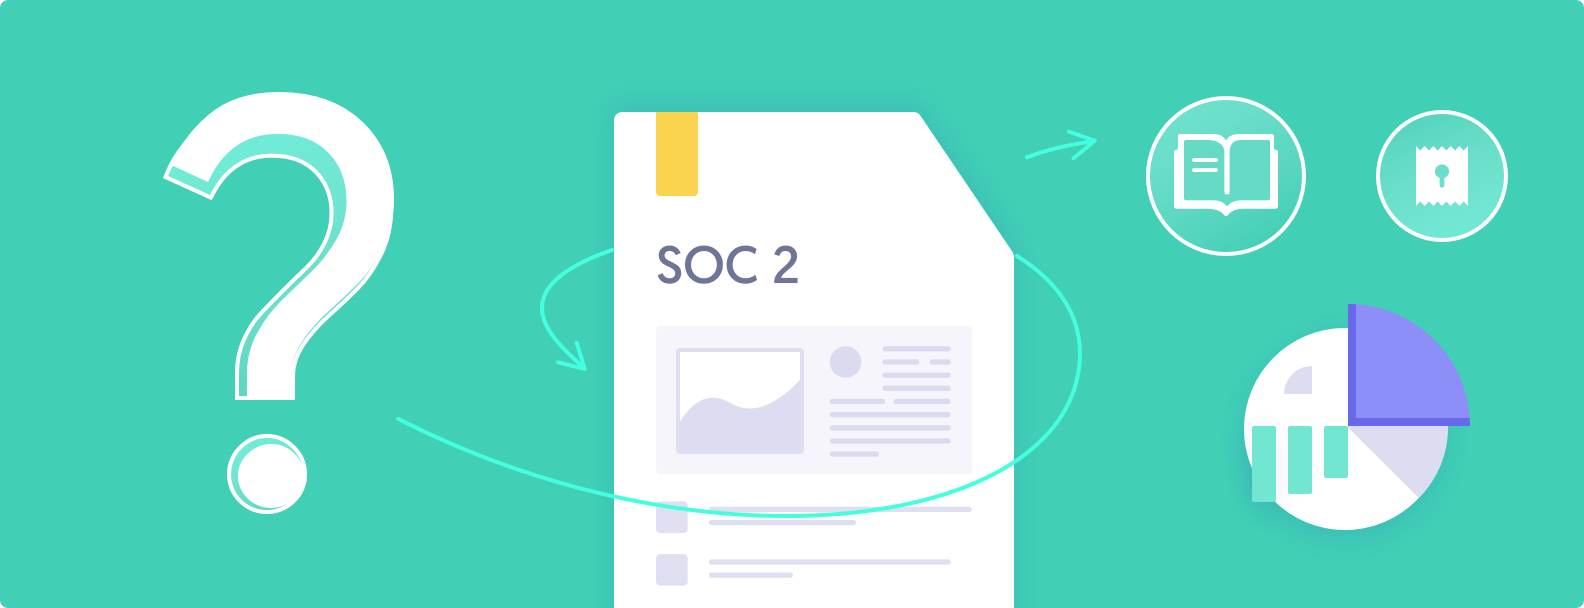 Who needs a SOC 2 report?